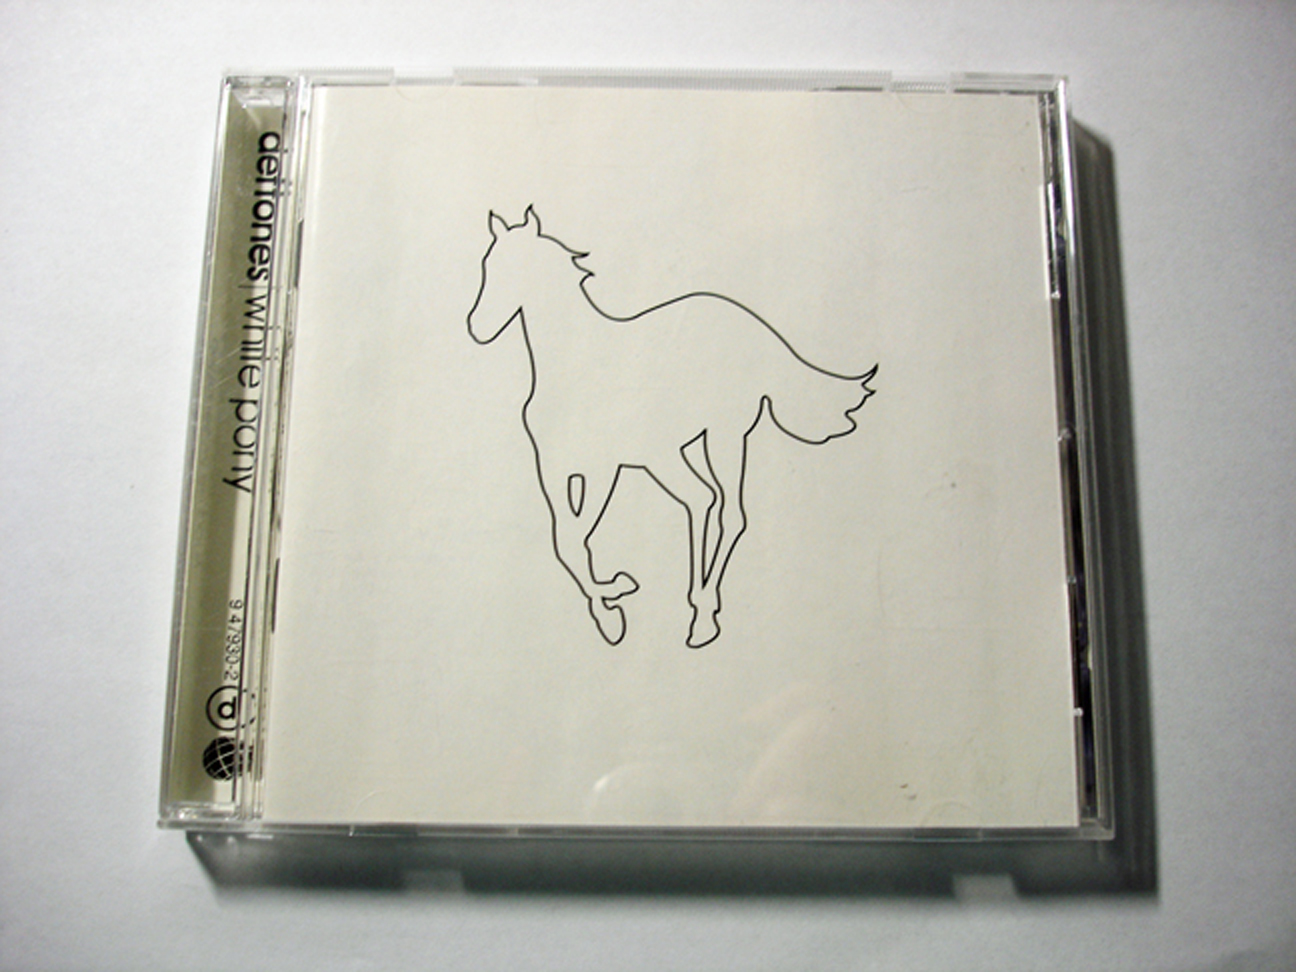 (album) White Pony (white cover) - Def..